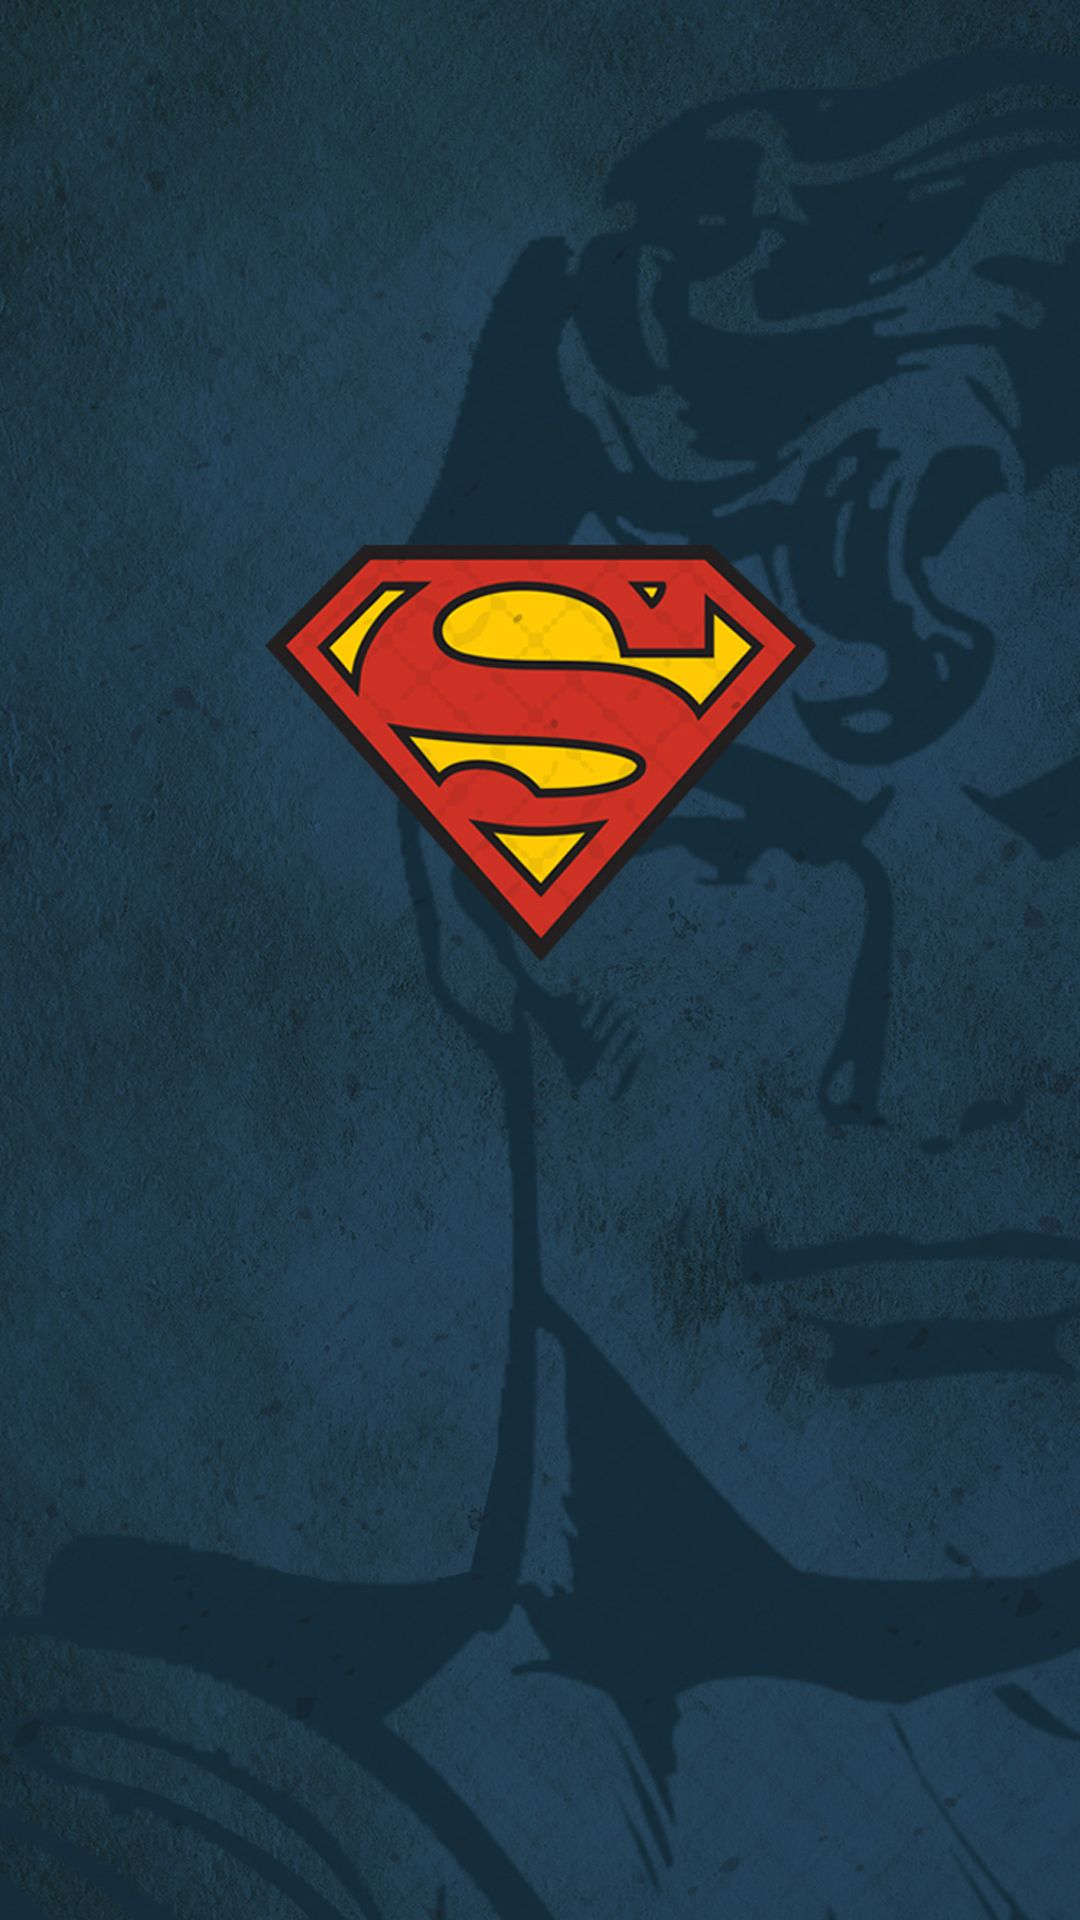 Superman 01 iPhone 6 Plus DC Comics iPhone Wallpapers